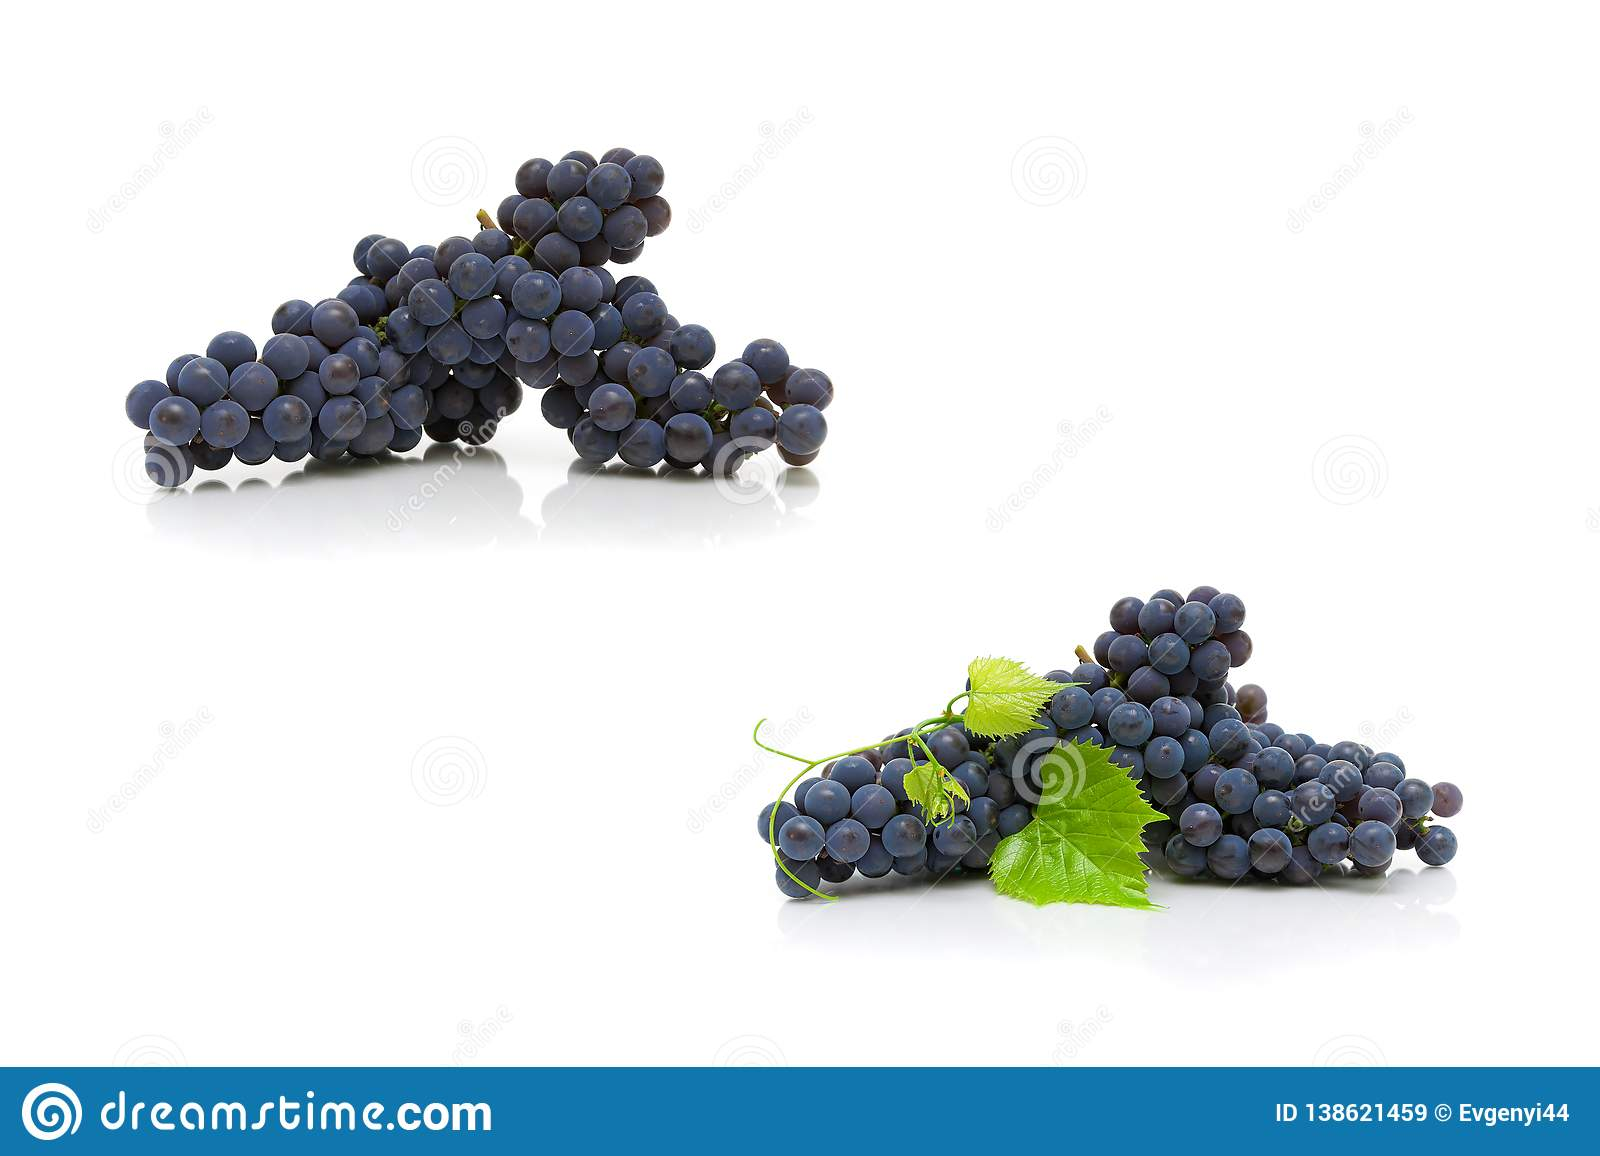 Bunch of ripe dark grapes and green leaves on white background